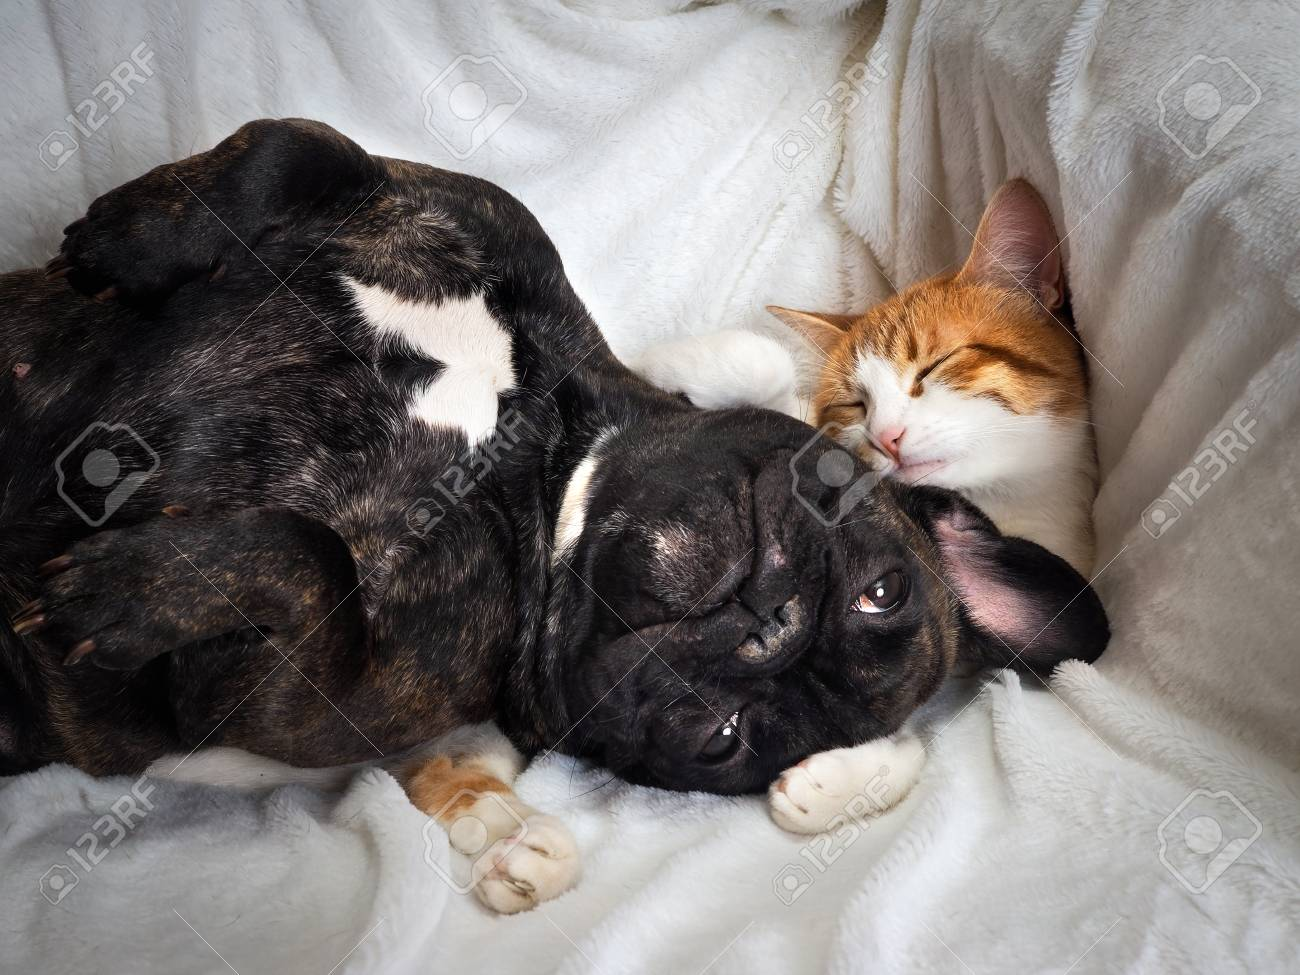 Dog and cat funny lying on a white blanket - 78436476